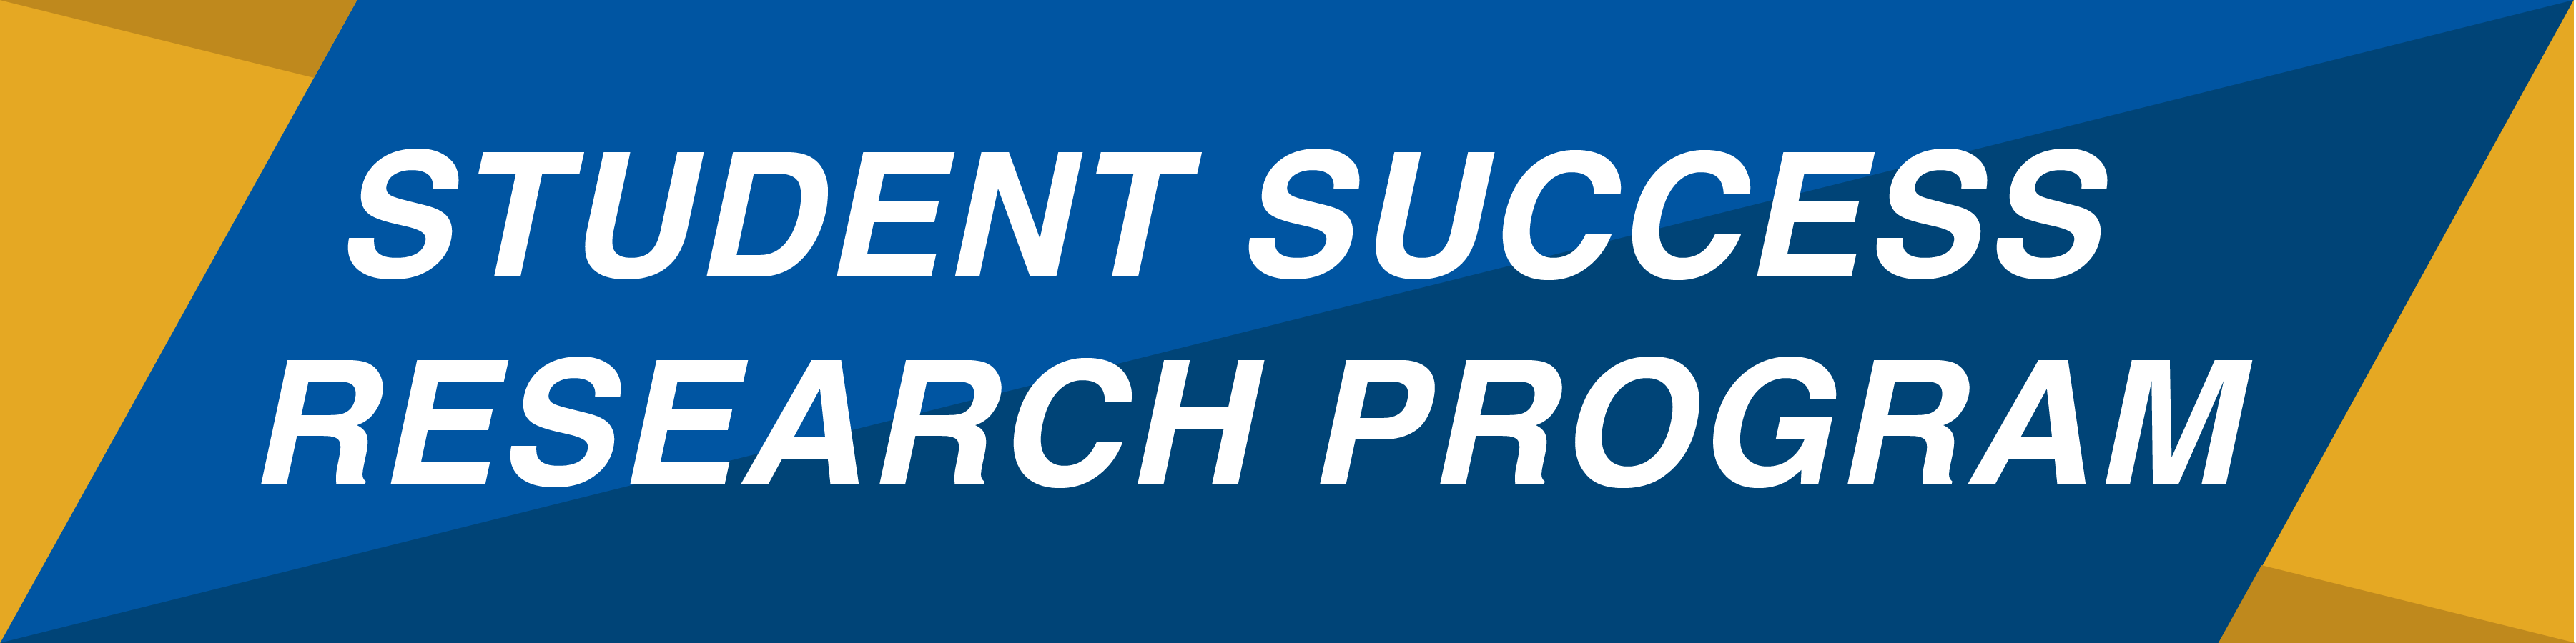 Student Success Research Program